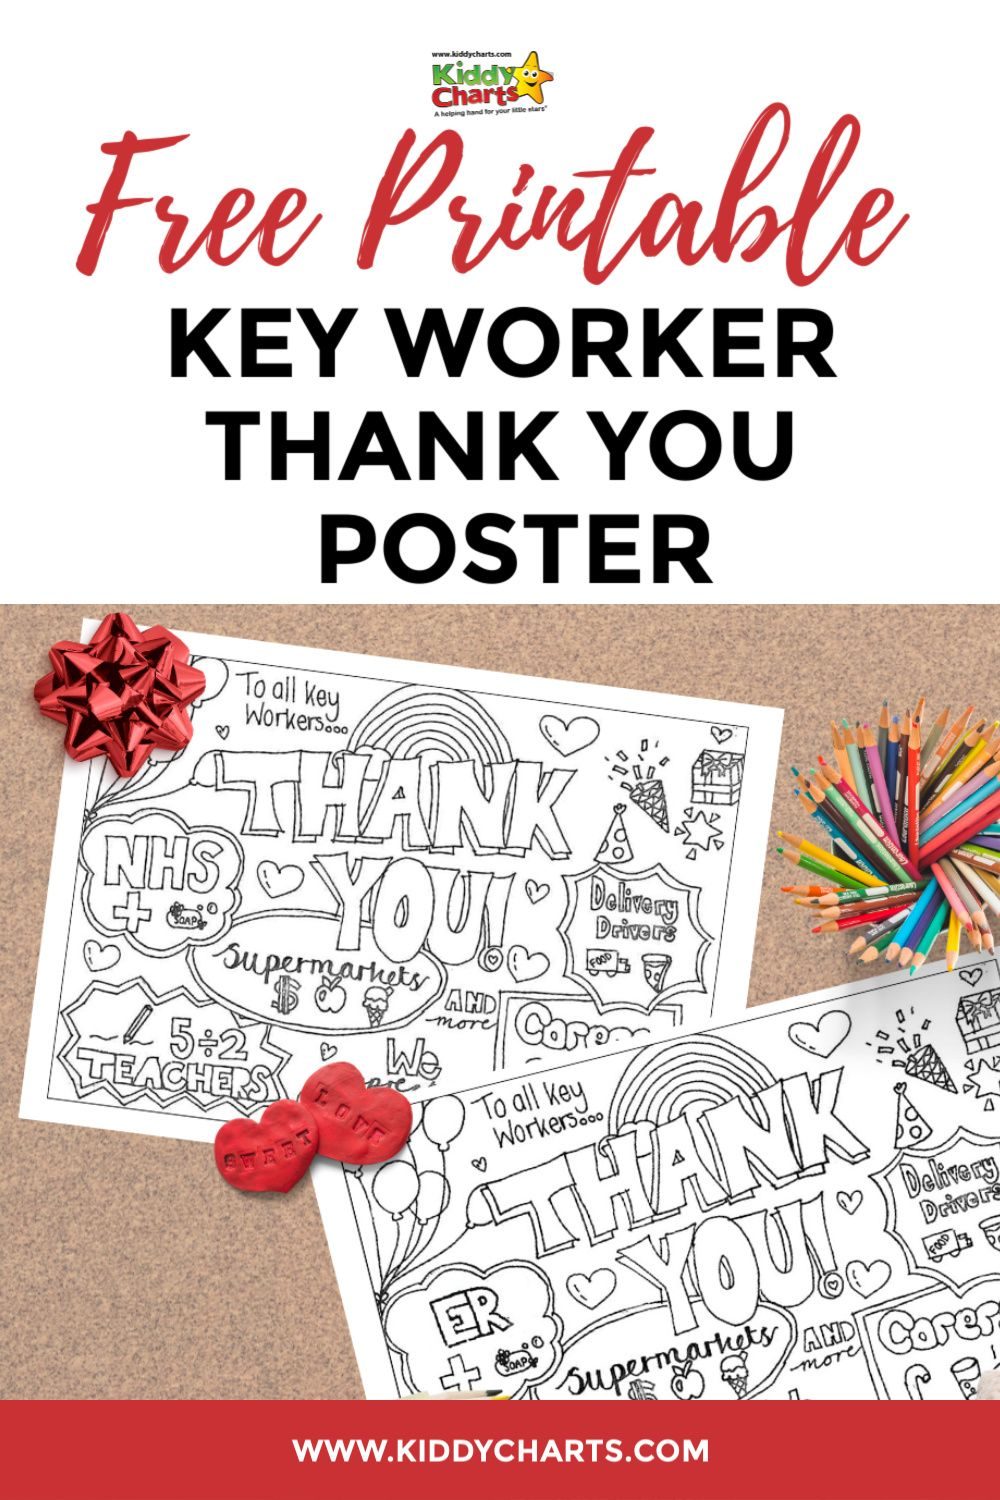 Free Printable Key Worker Thank You Poster Thank You Poster Coloring Pages For Kids Fun Activities For Kids